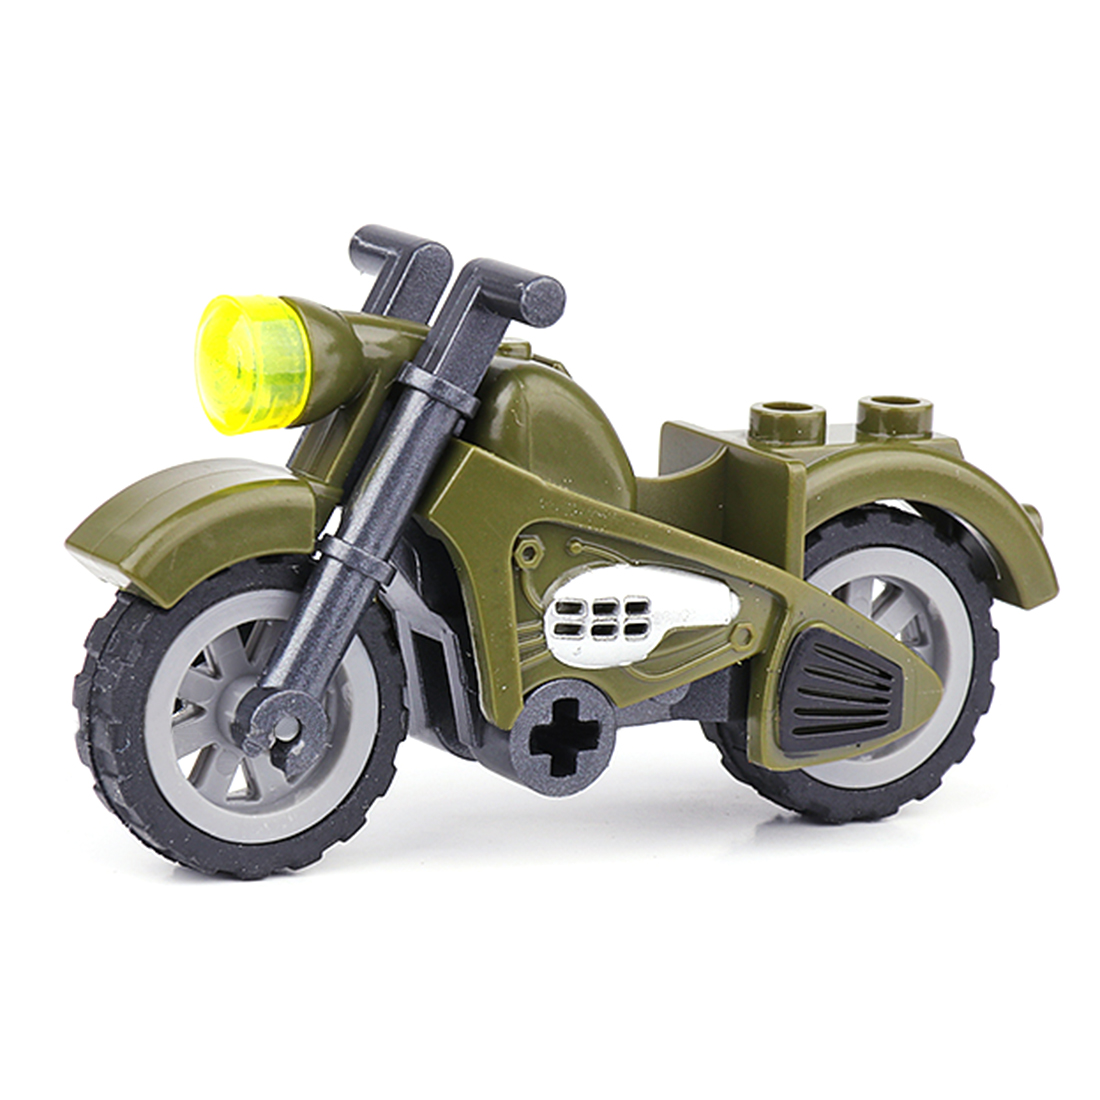 Surwish Military War Theme DIY Small Particle Building Block Model Puzzle Assemble Toy For 100% Building Block Brands Motorcycle